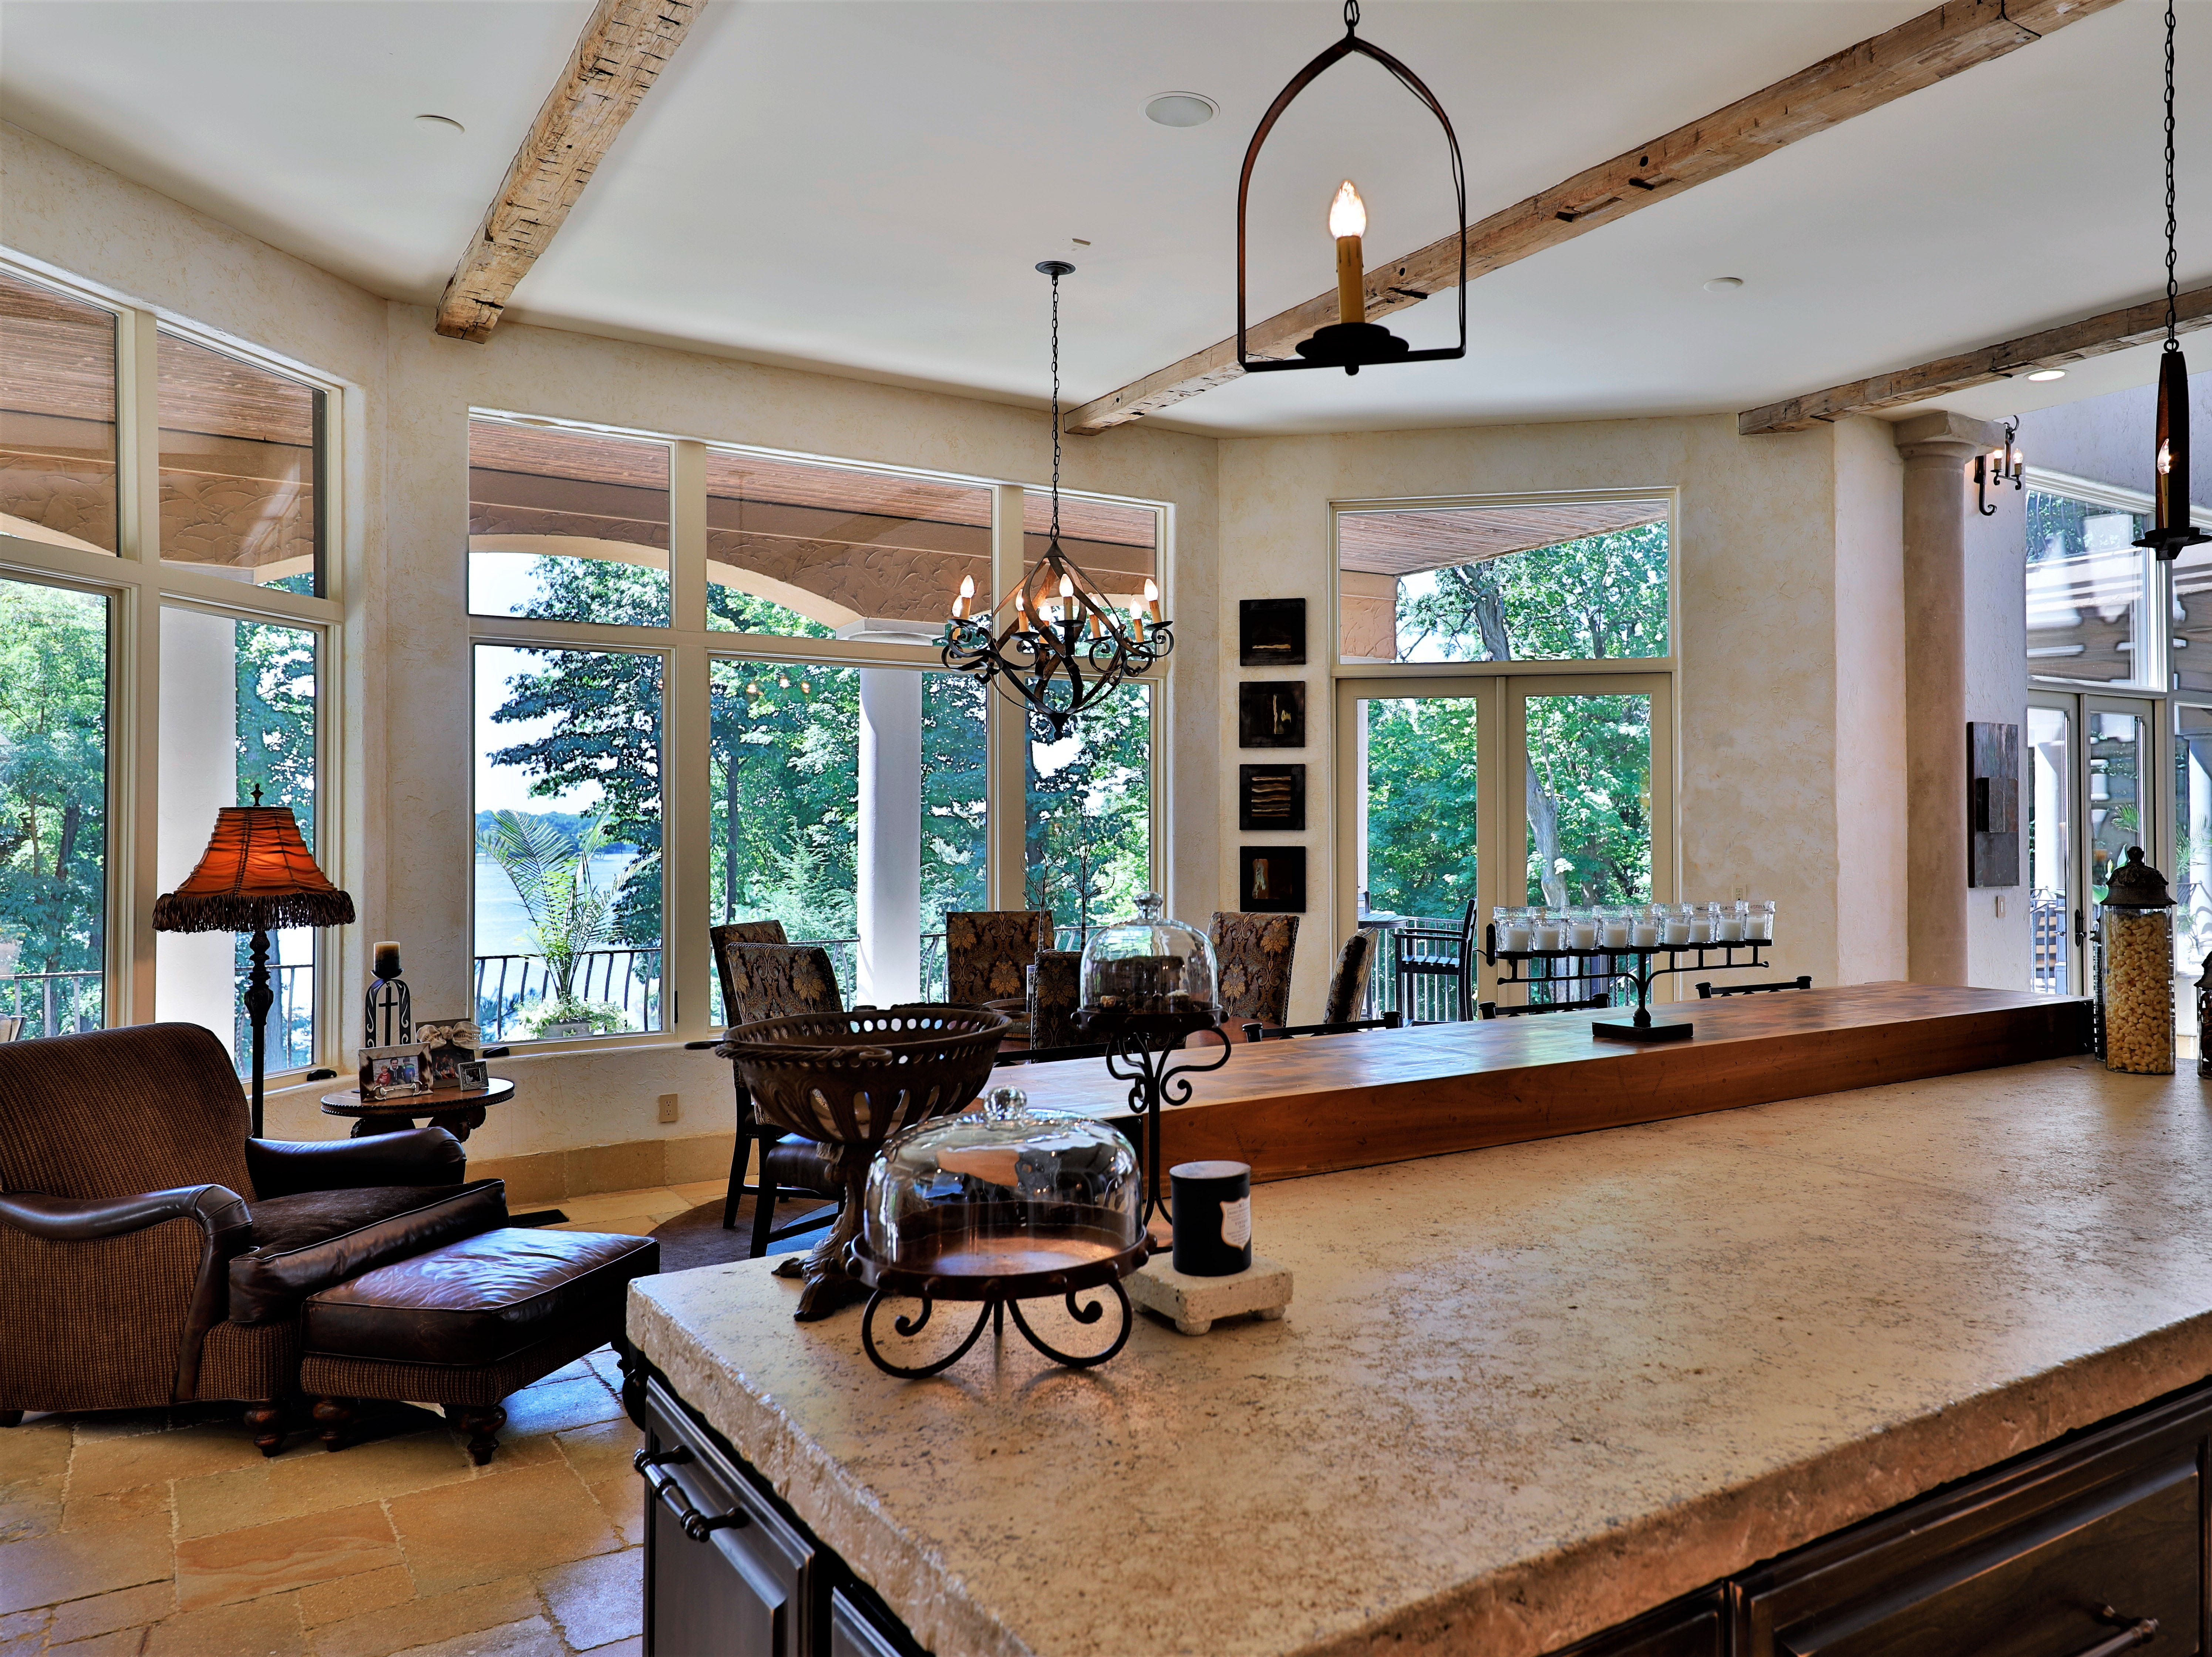 The main kitchen offers views of the reservoir and access to large, covered balcony above the walk-out basement.